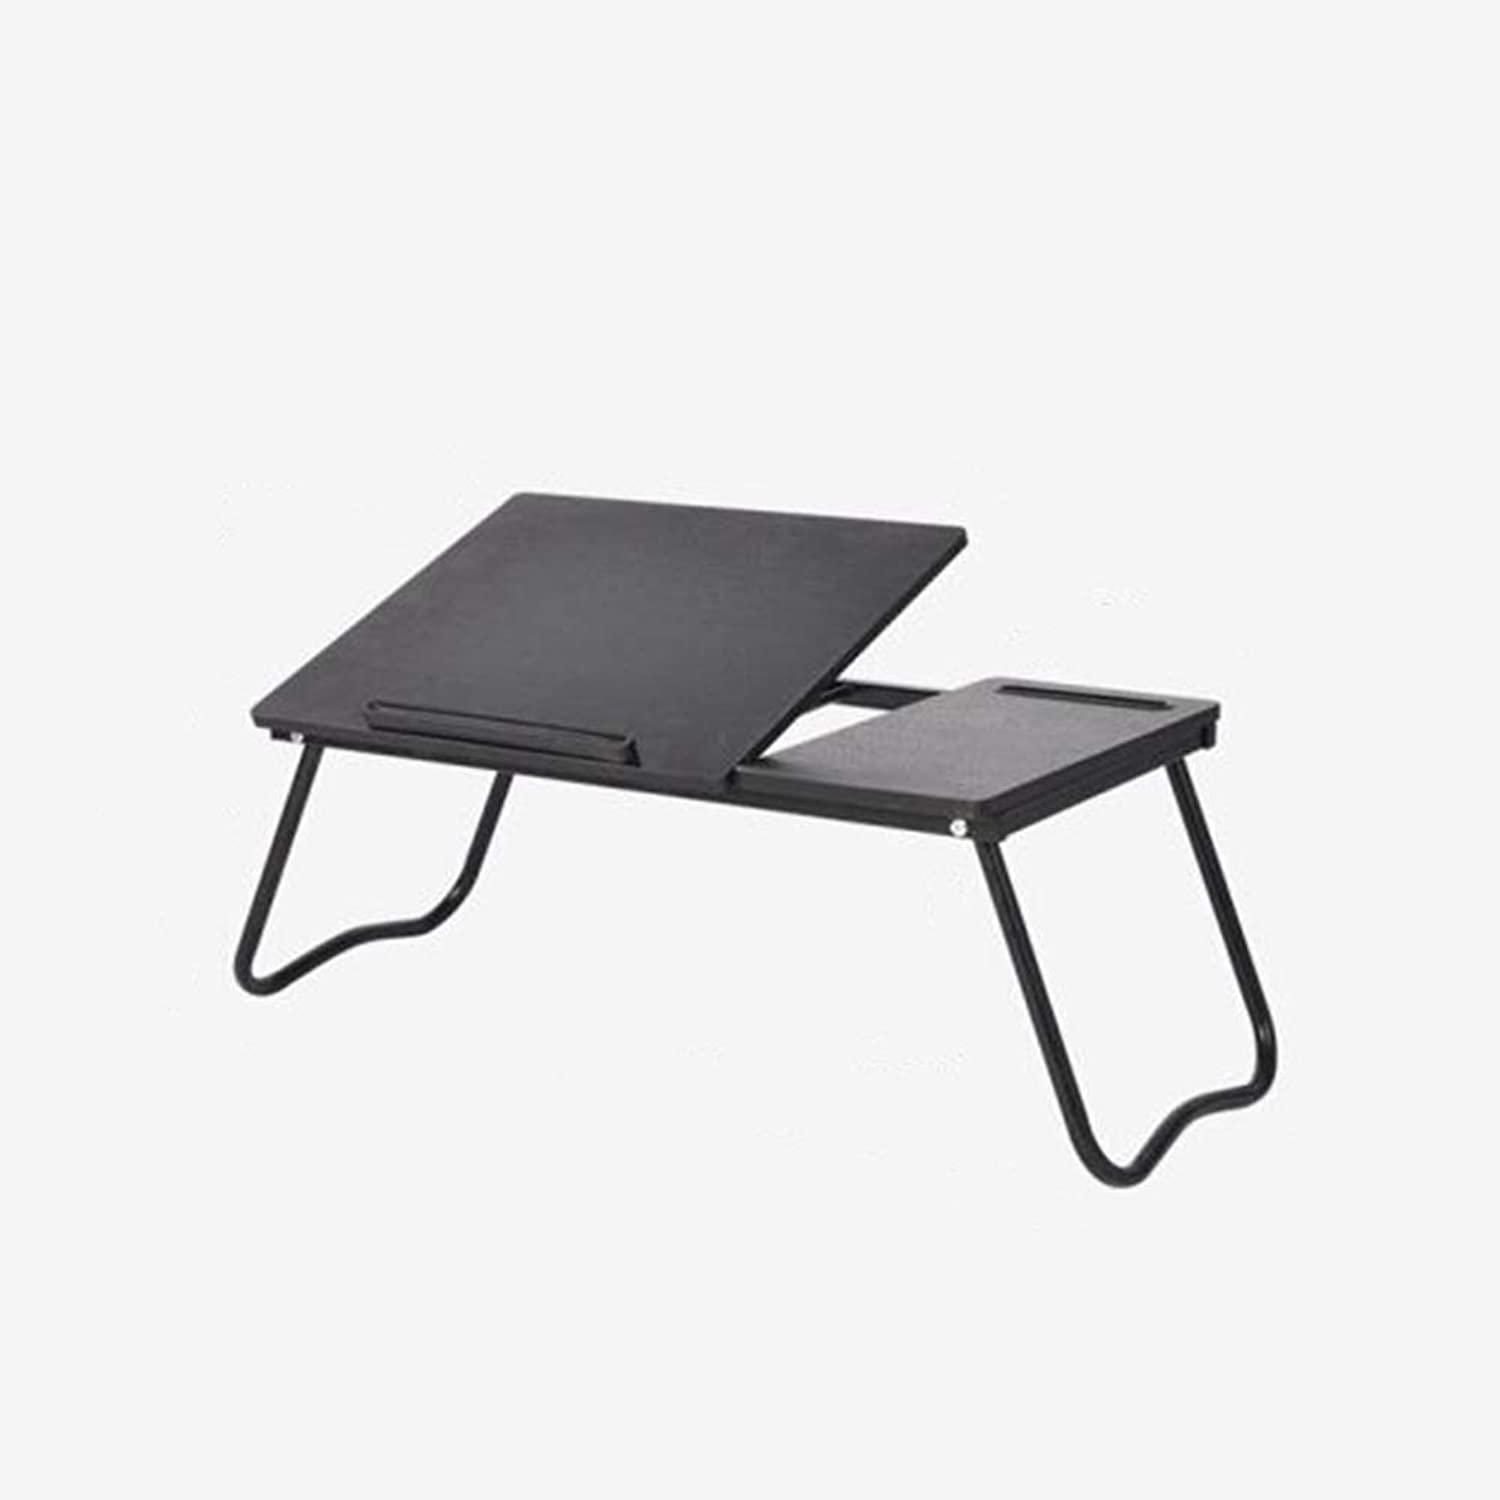 QIDI Laptop Folding Table Wooden for Bed Home Office Study Breakfast Drawing Bedroom (color   Black)